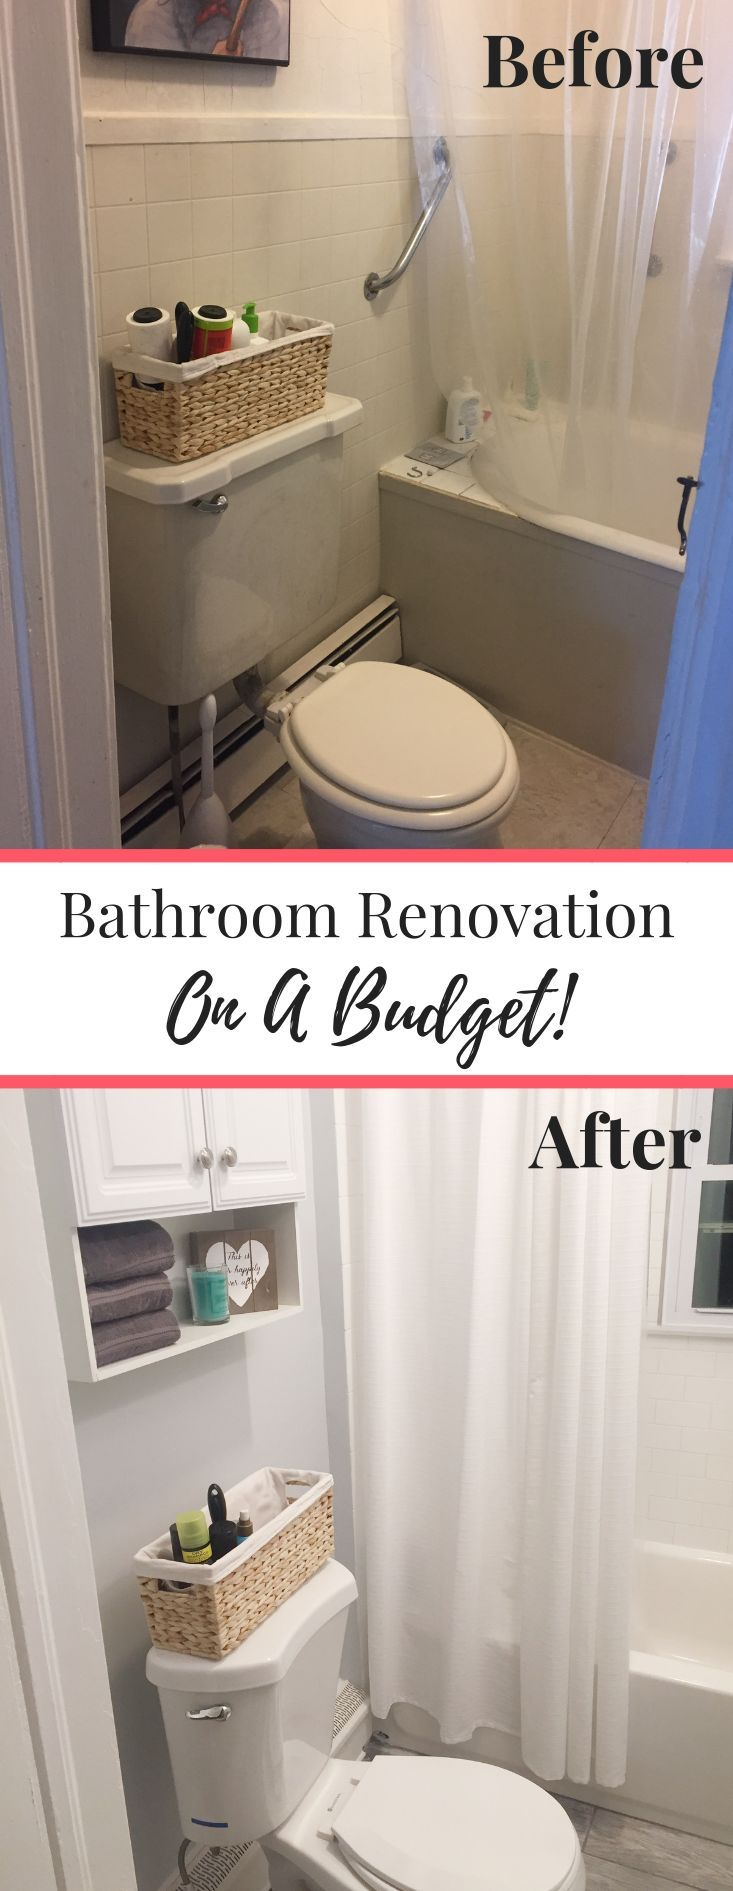 Our Small Bathroom Remodel On A Budget images